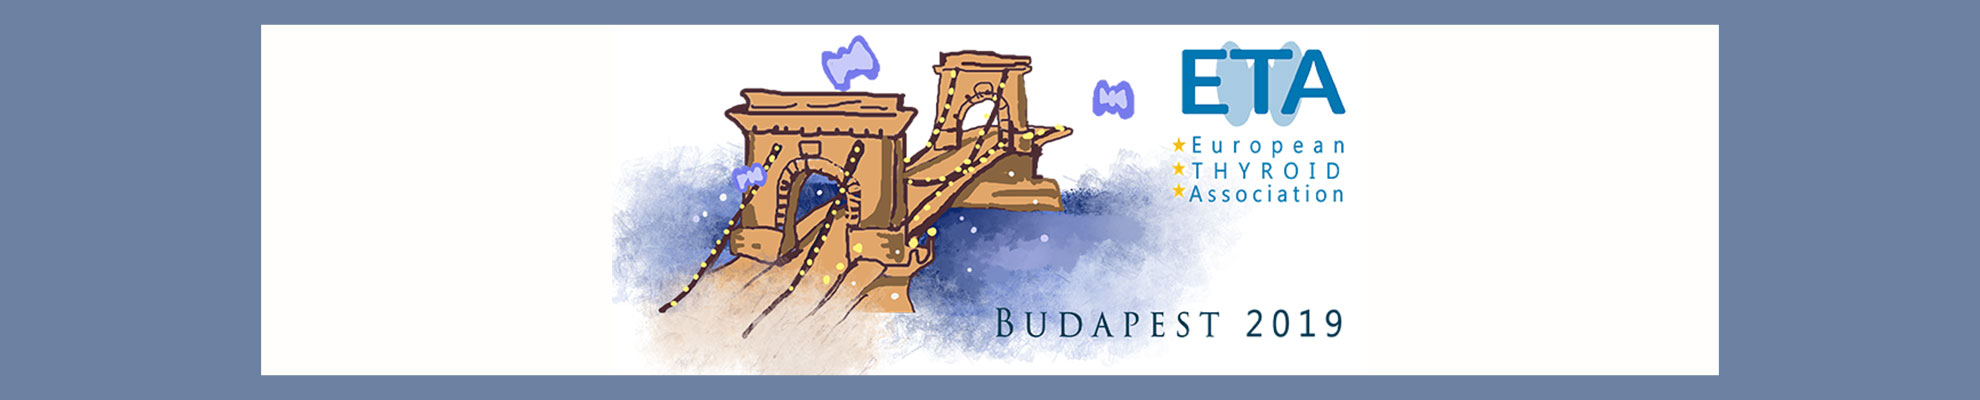 IBSA ETA Congress Budapest September 2019